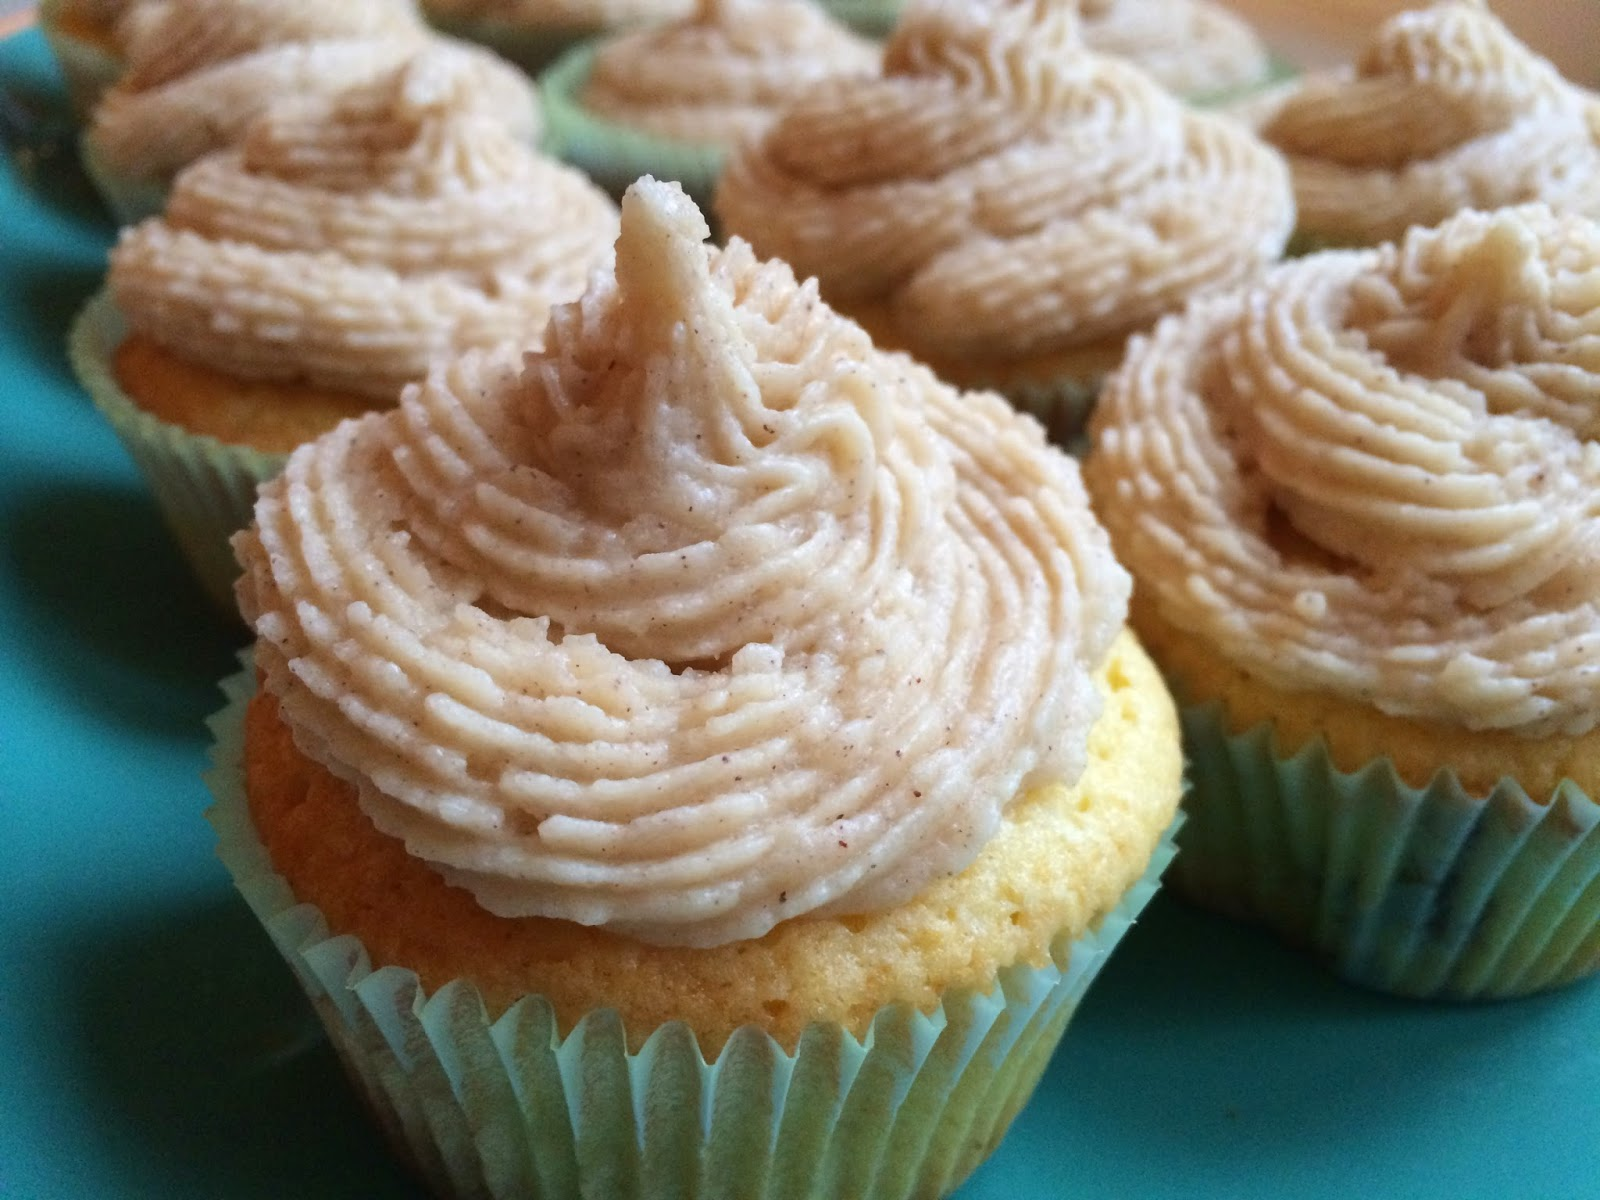 Snickerdoodle Cupcakes with Streusel and Cinnamon Frosting